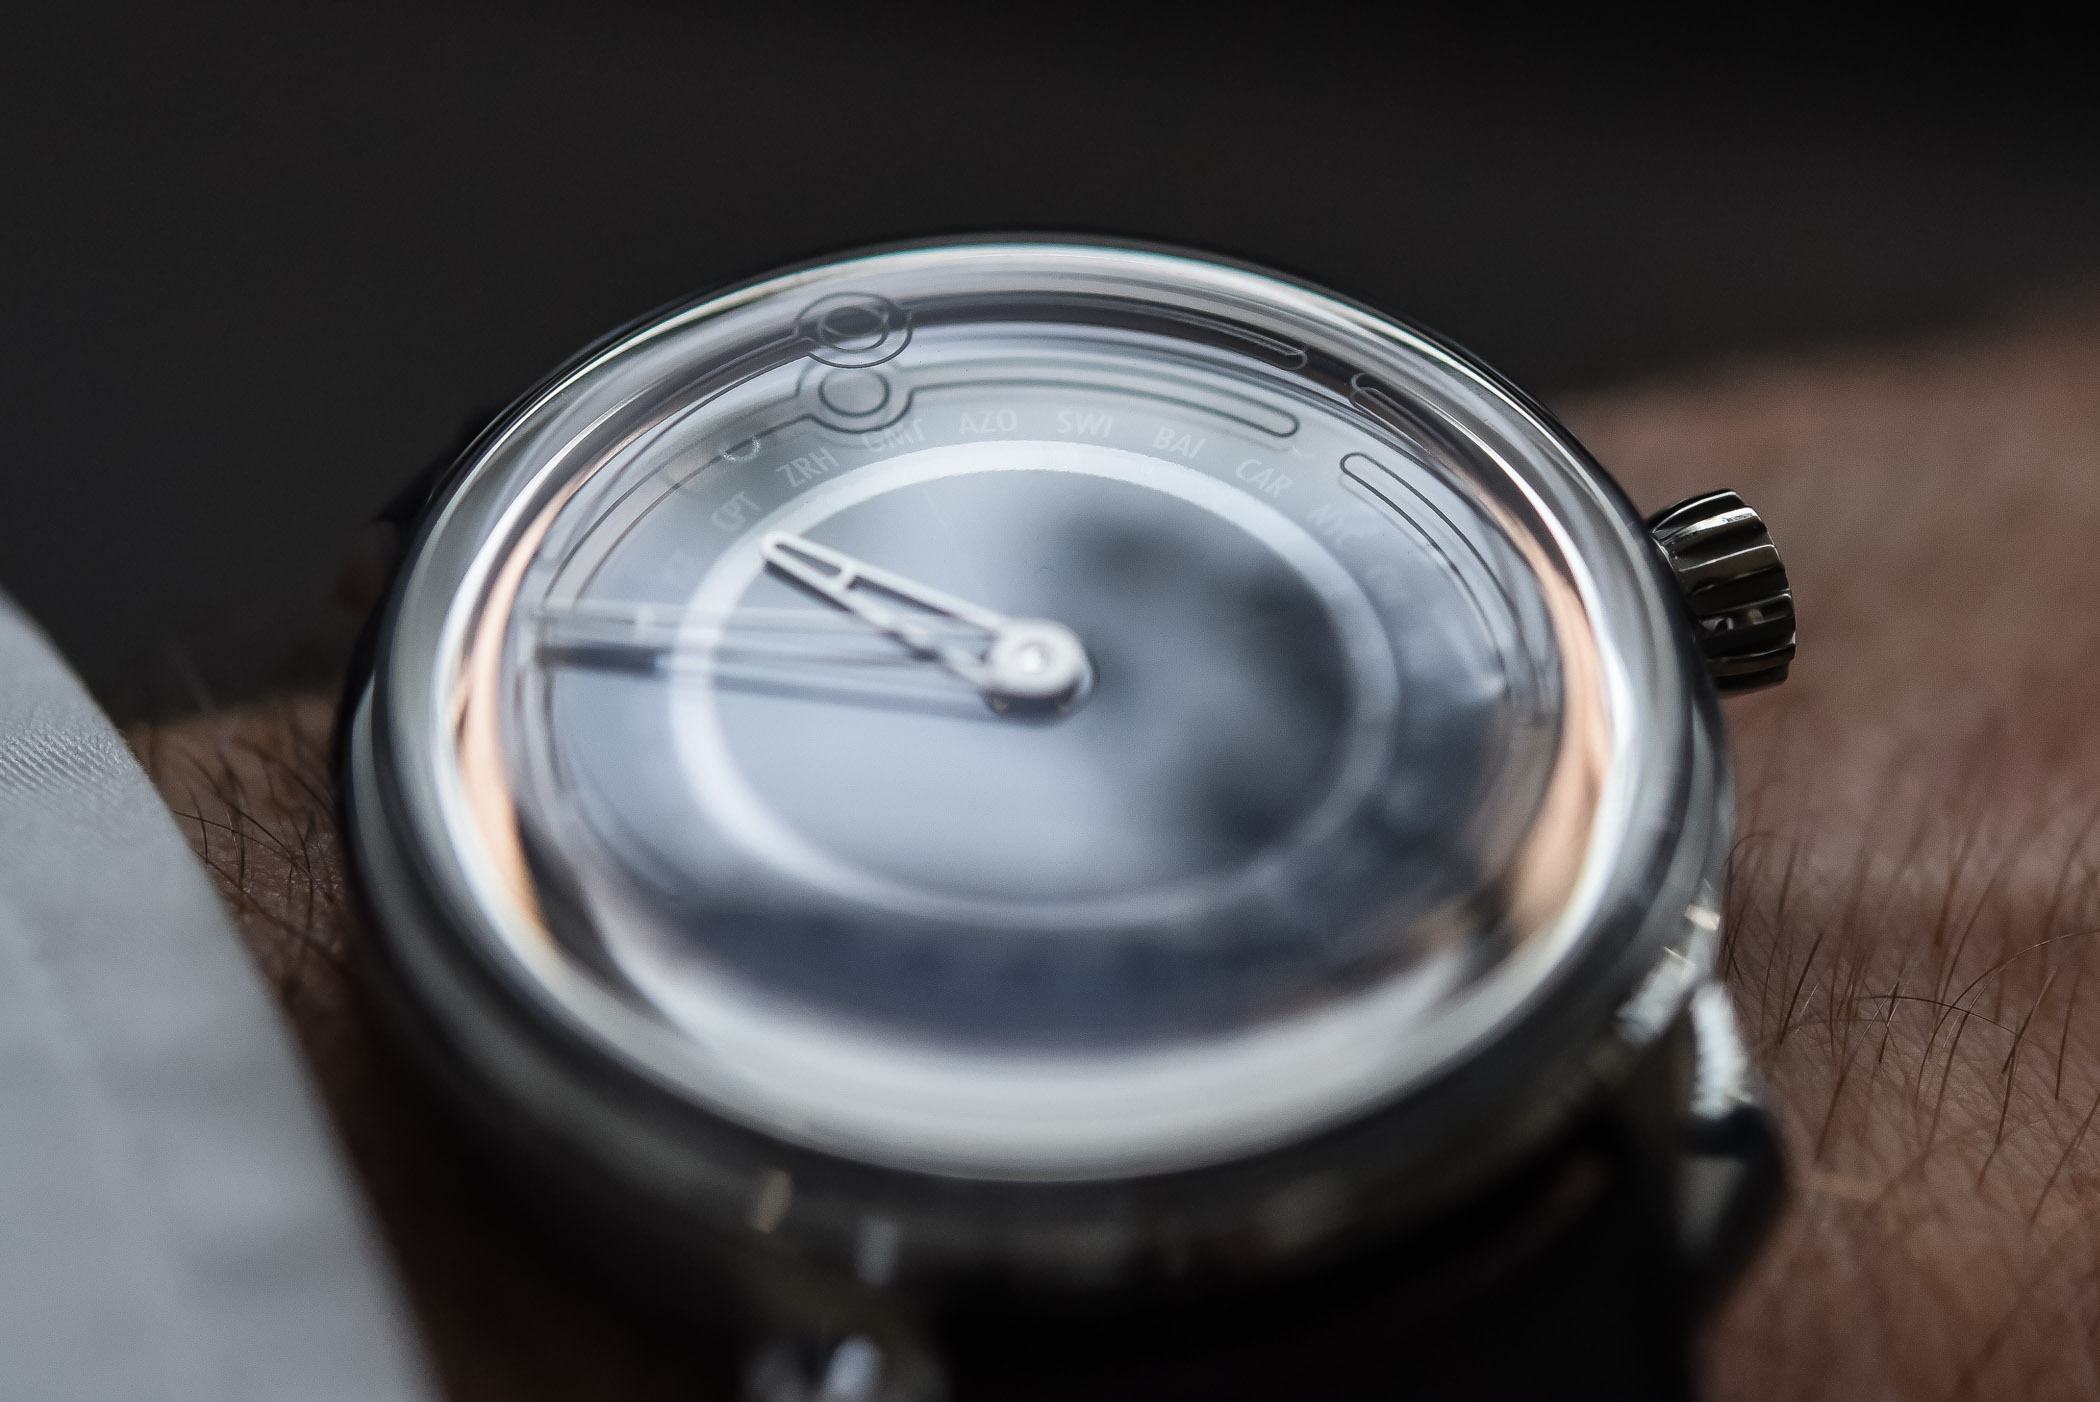 MING 19.02 Worldtimer Review